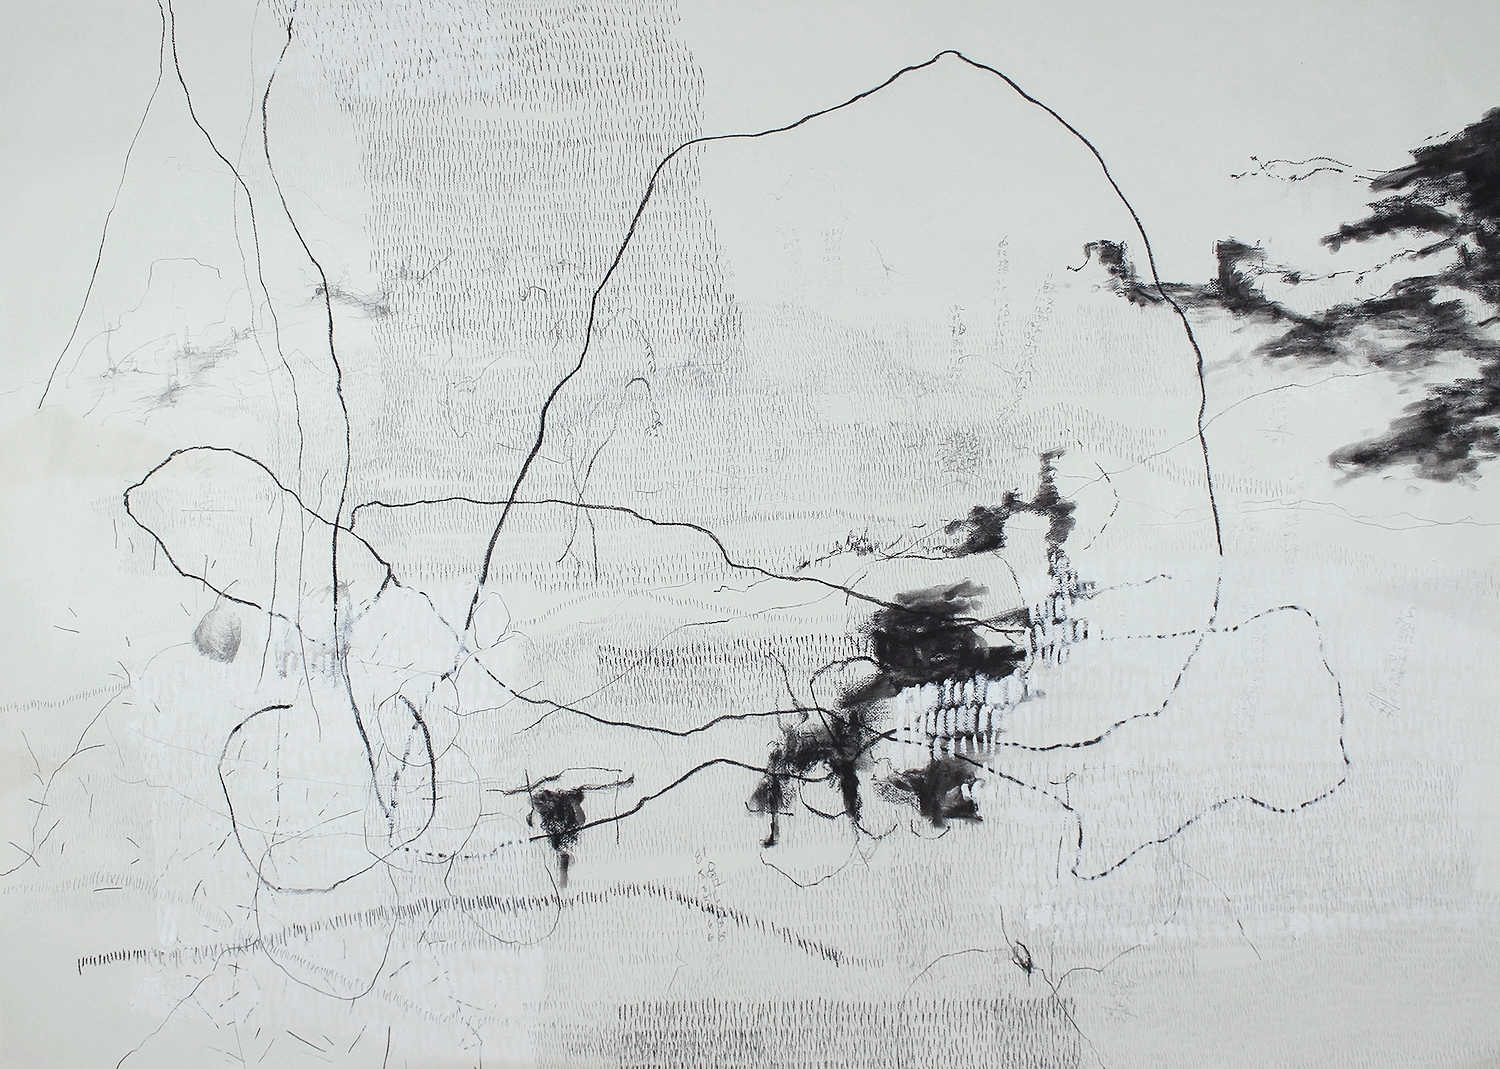 """18,672 Steps to Mount Wellington , Graphite, charcoal, oil on paper,17.5"""" x 25.6"""", 2010"""